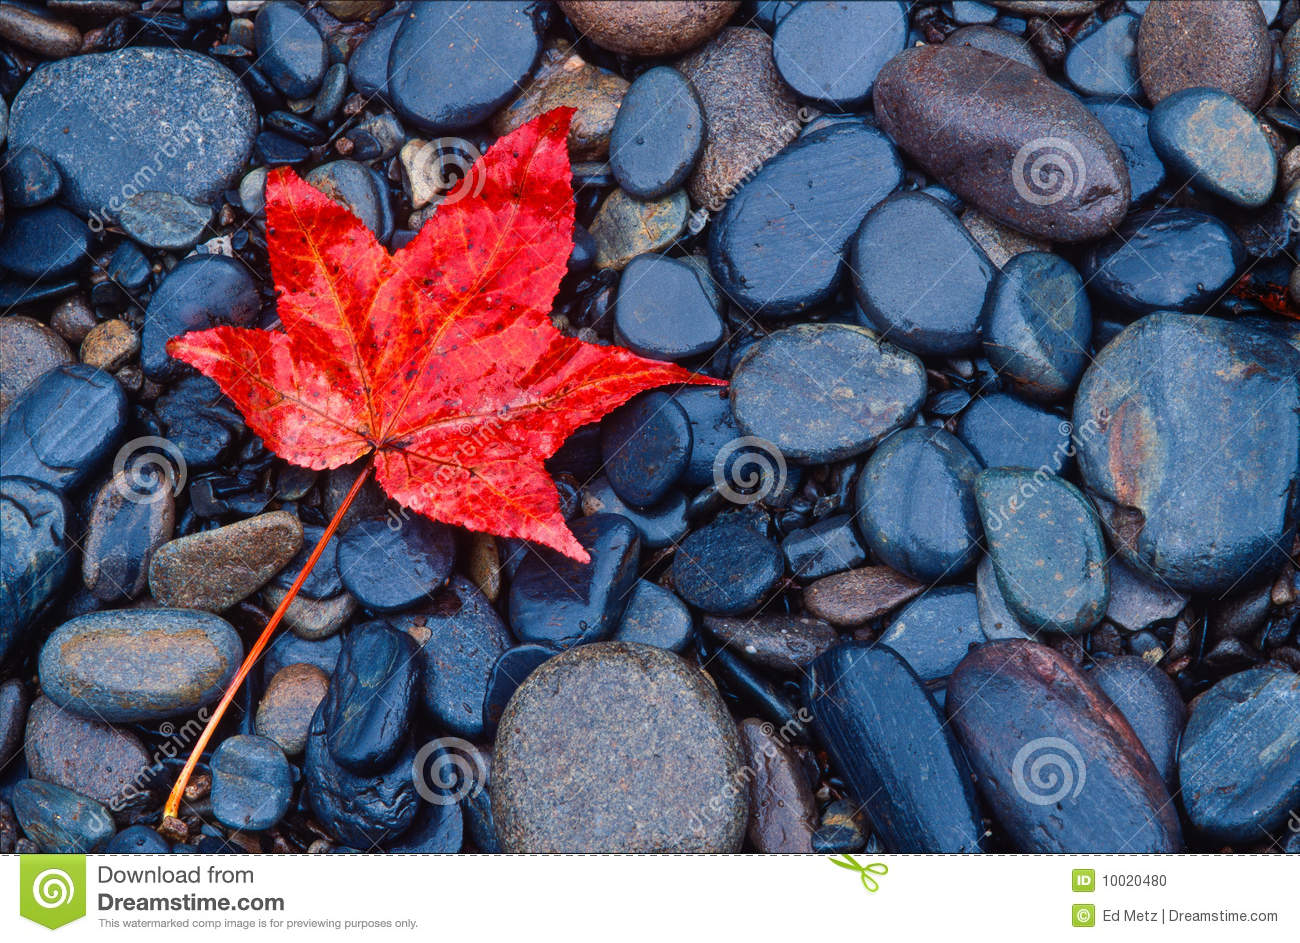 Fall Foliage Wallpaper Brilliant Red Fall Leaf On River Rocks Stock Photo Image